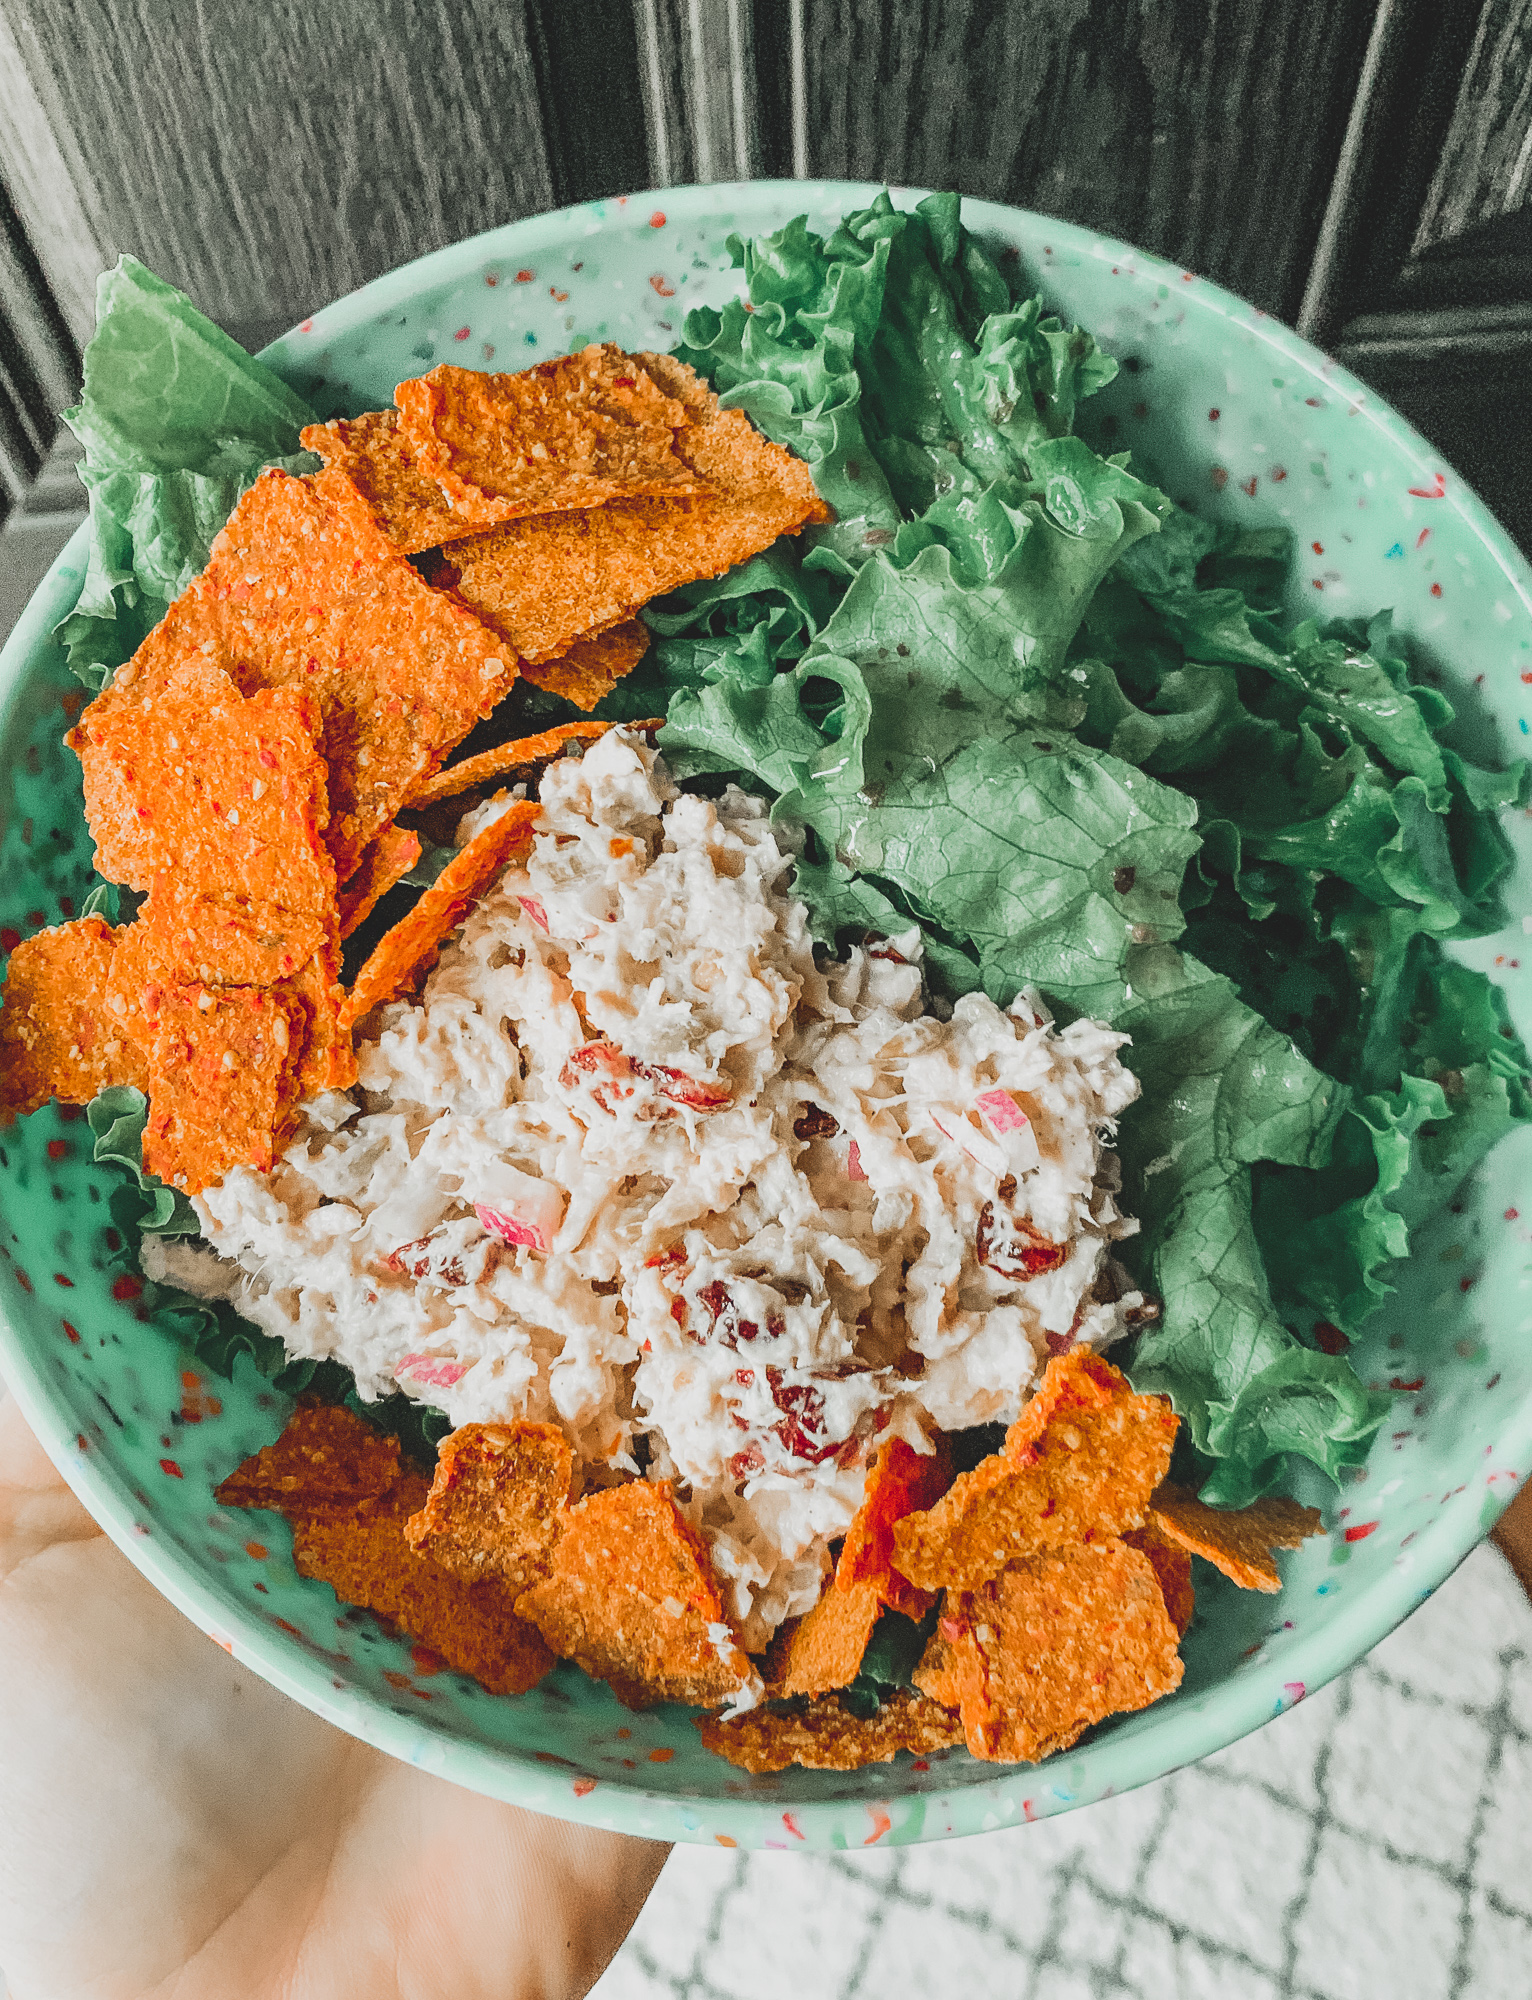 healthy dairy free tuna salad, no added sugar, recipes crackers, kale, dinner, gluten free